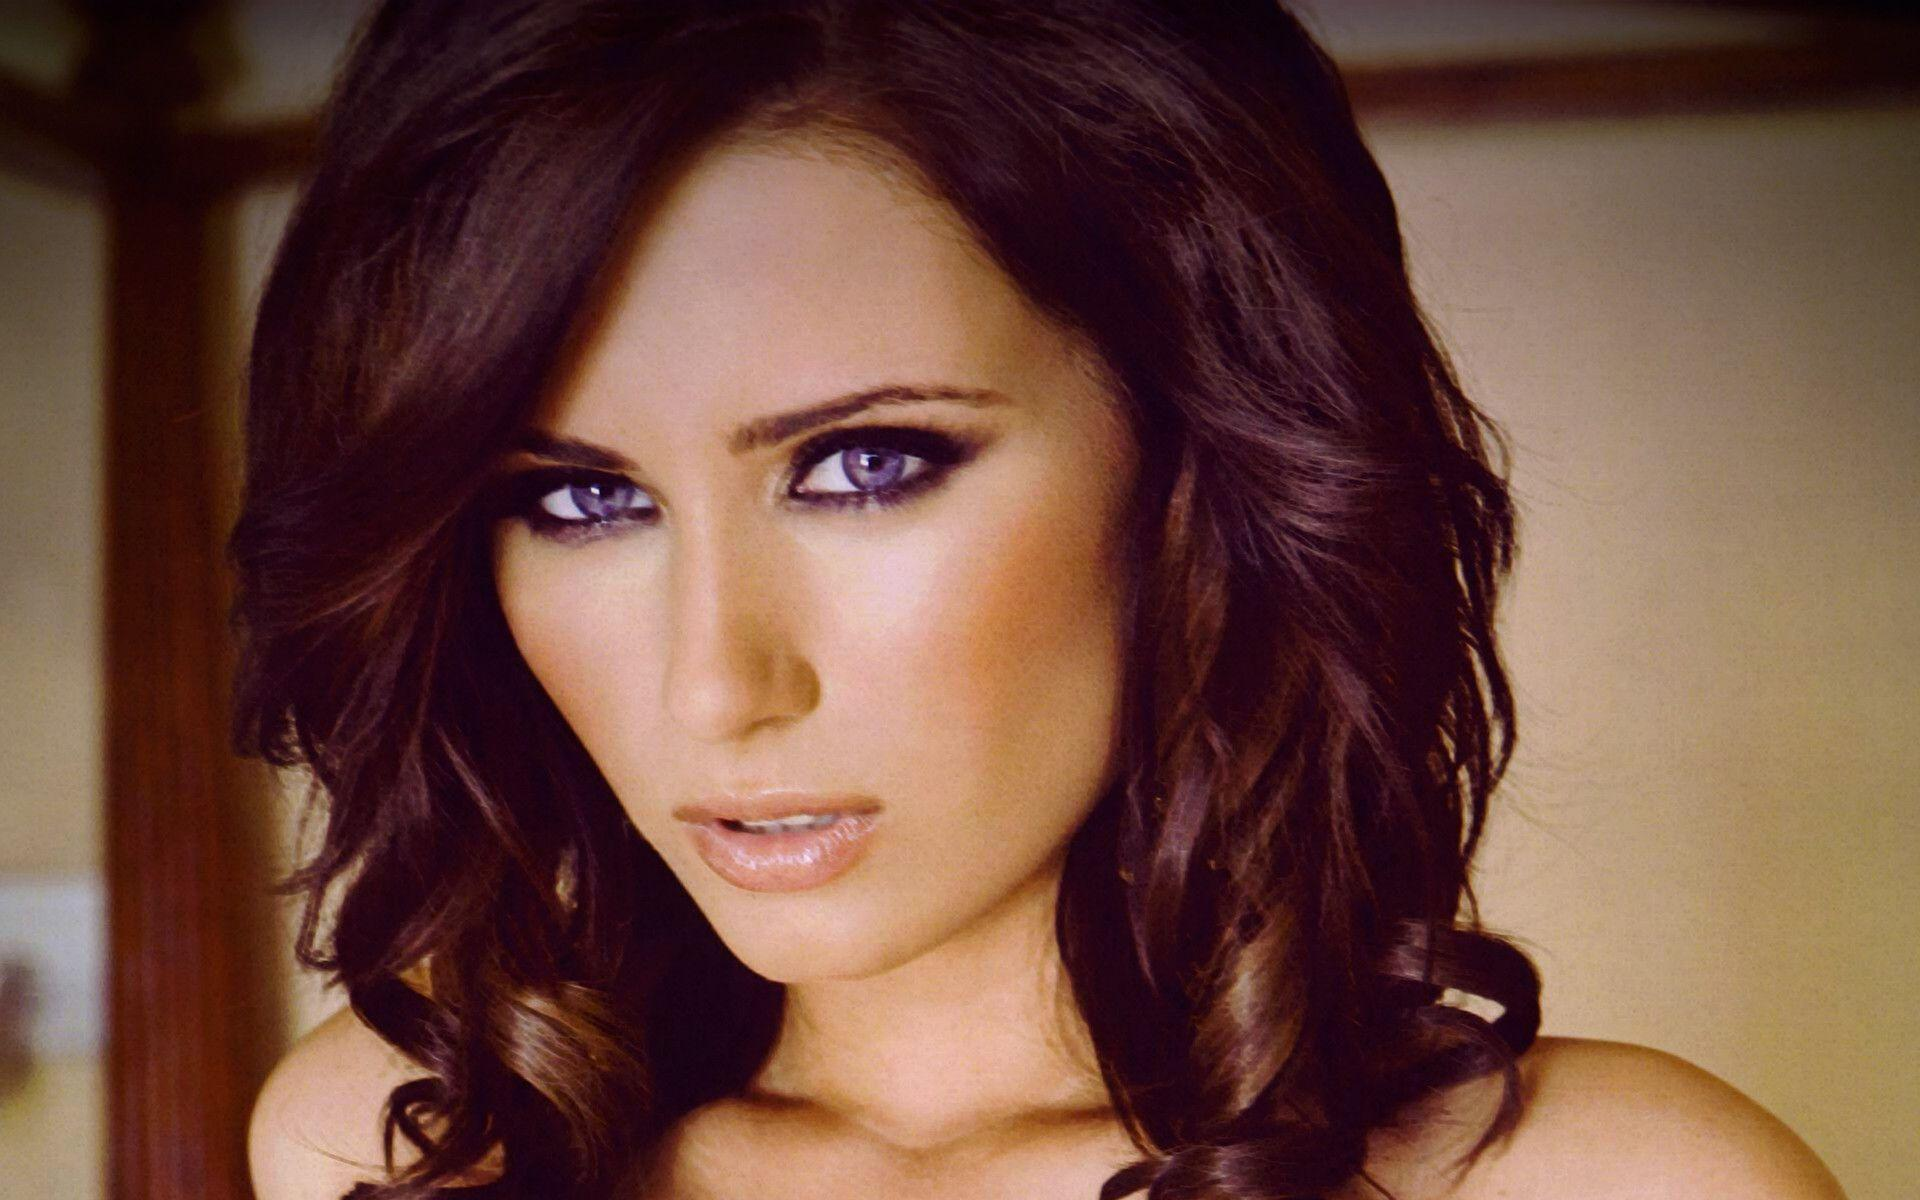 Images Sammy Braddy nude photos 2019